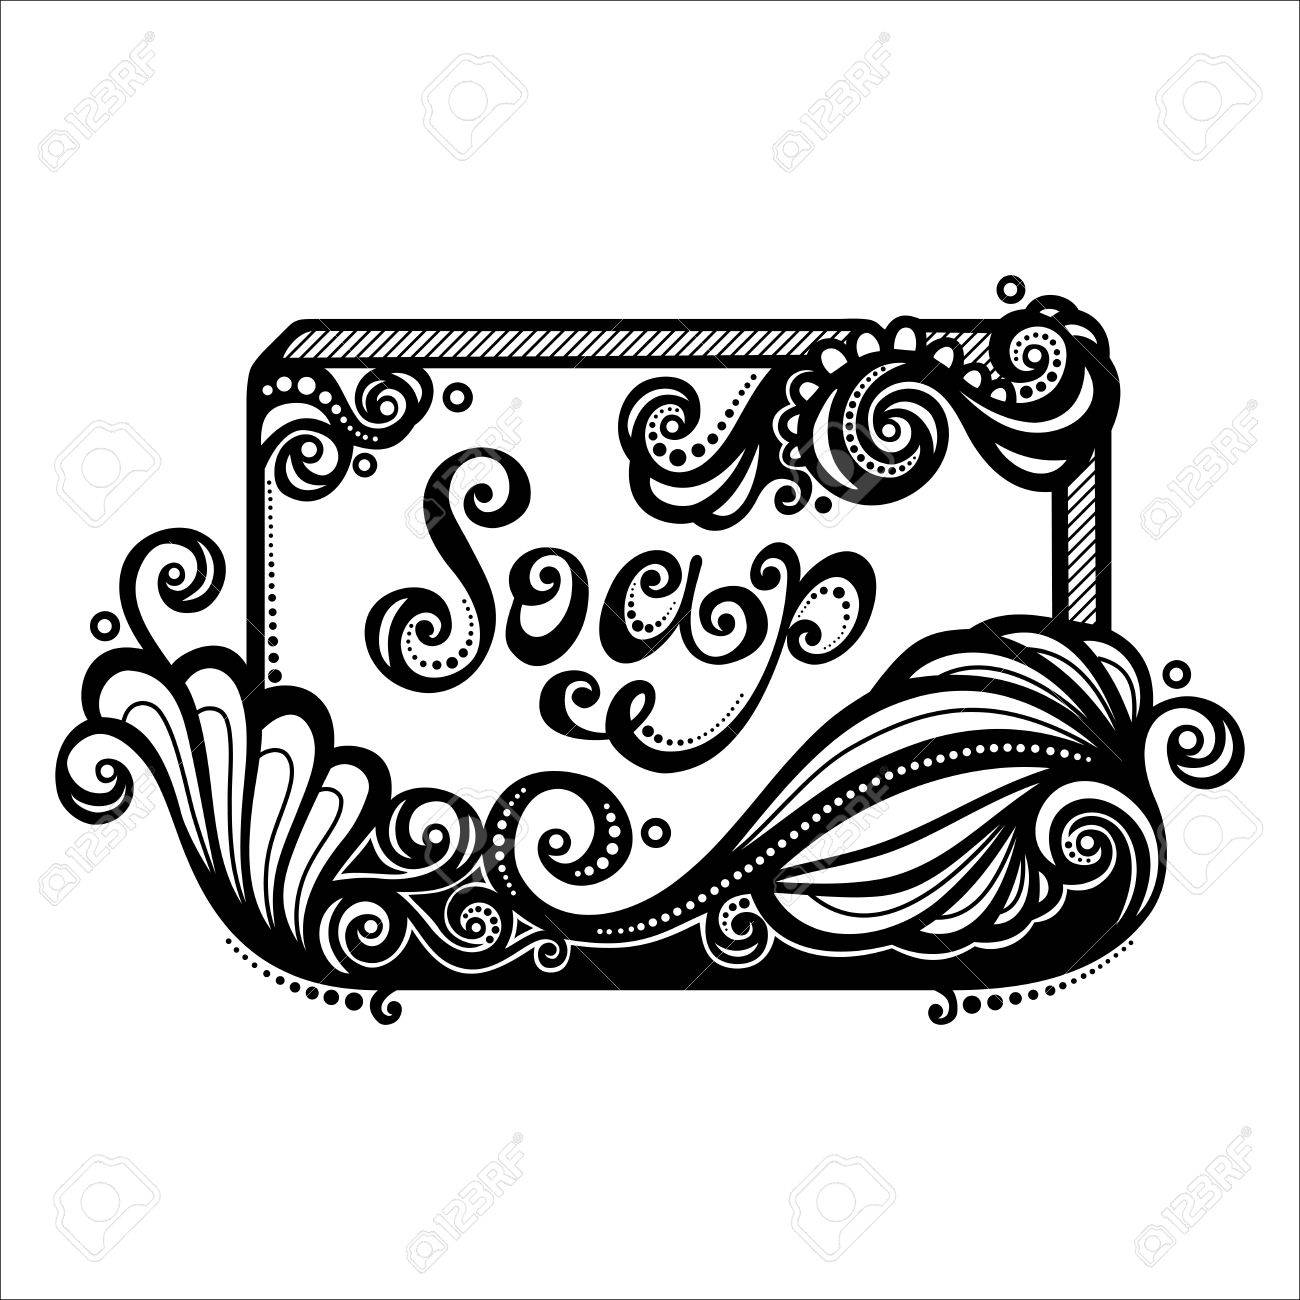 539 Soap Bar Icon Cliparts, Stock Vector And Royalty Free Soap Bar ...